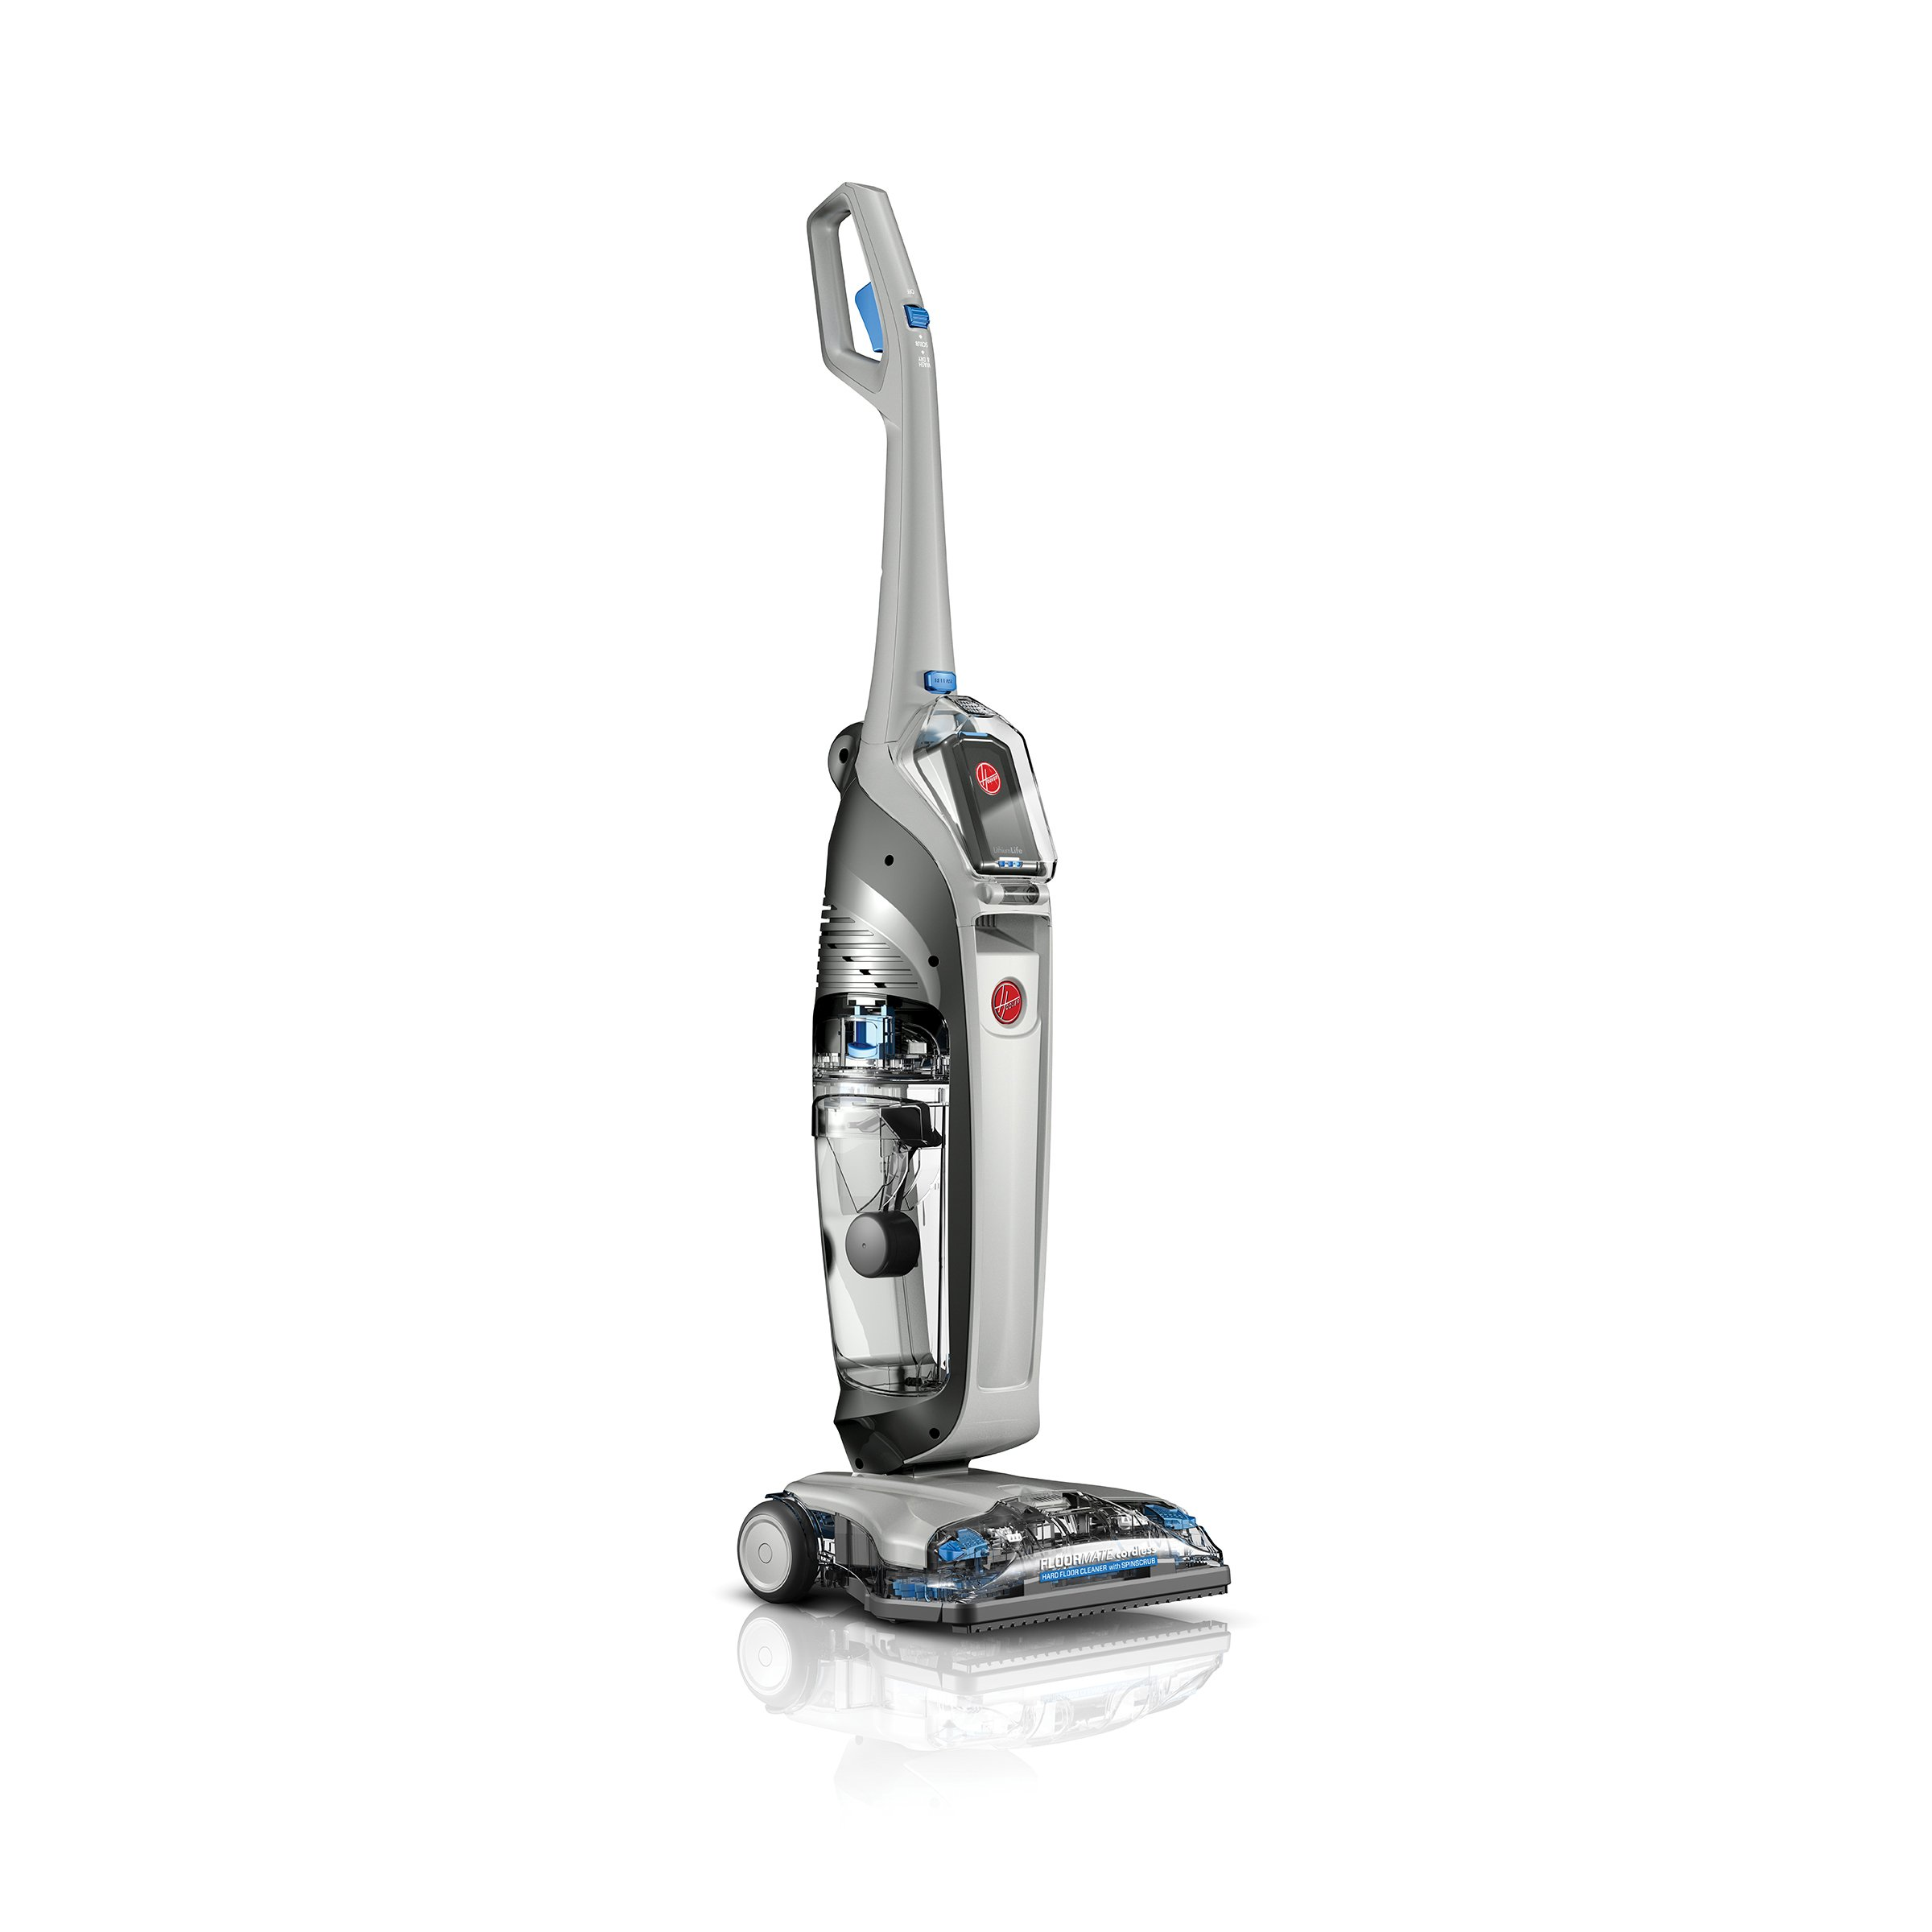 Hoover FloorMate Cordless Hard Floor Cleaner, BH55100PC by Hoover (Image #14)